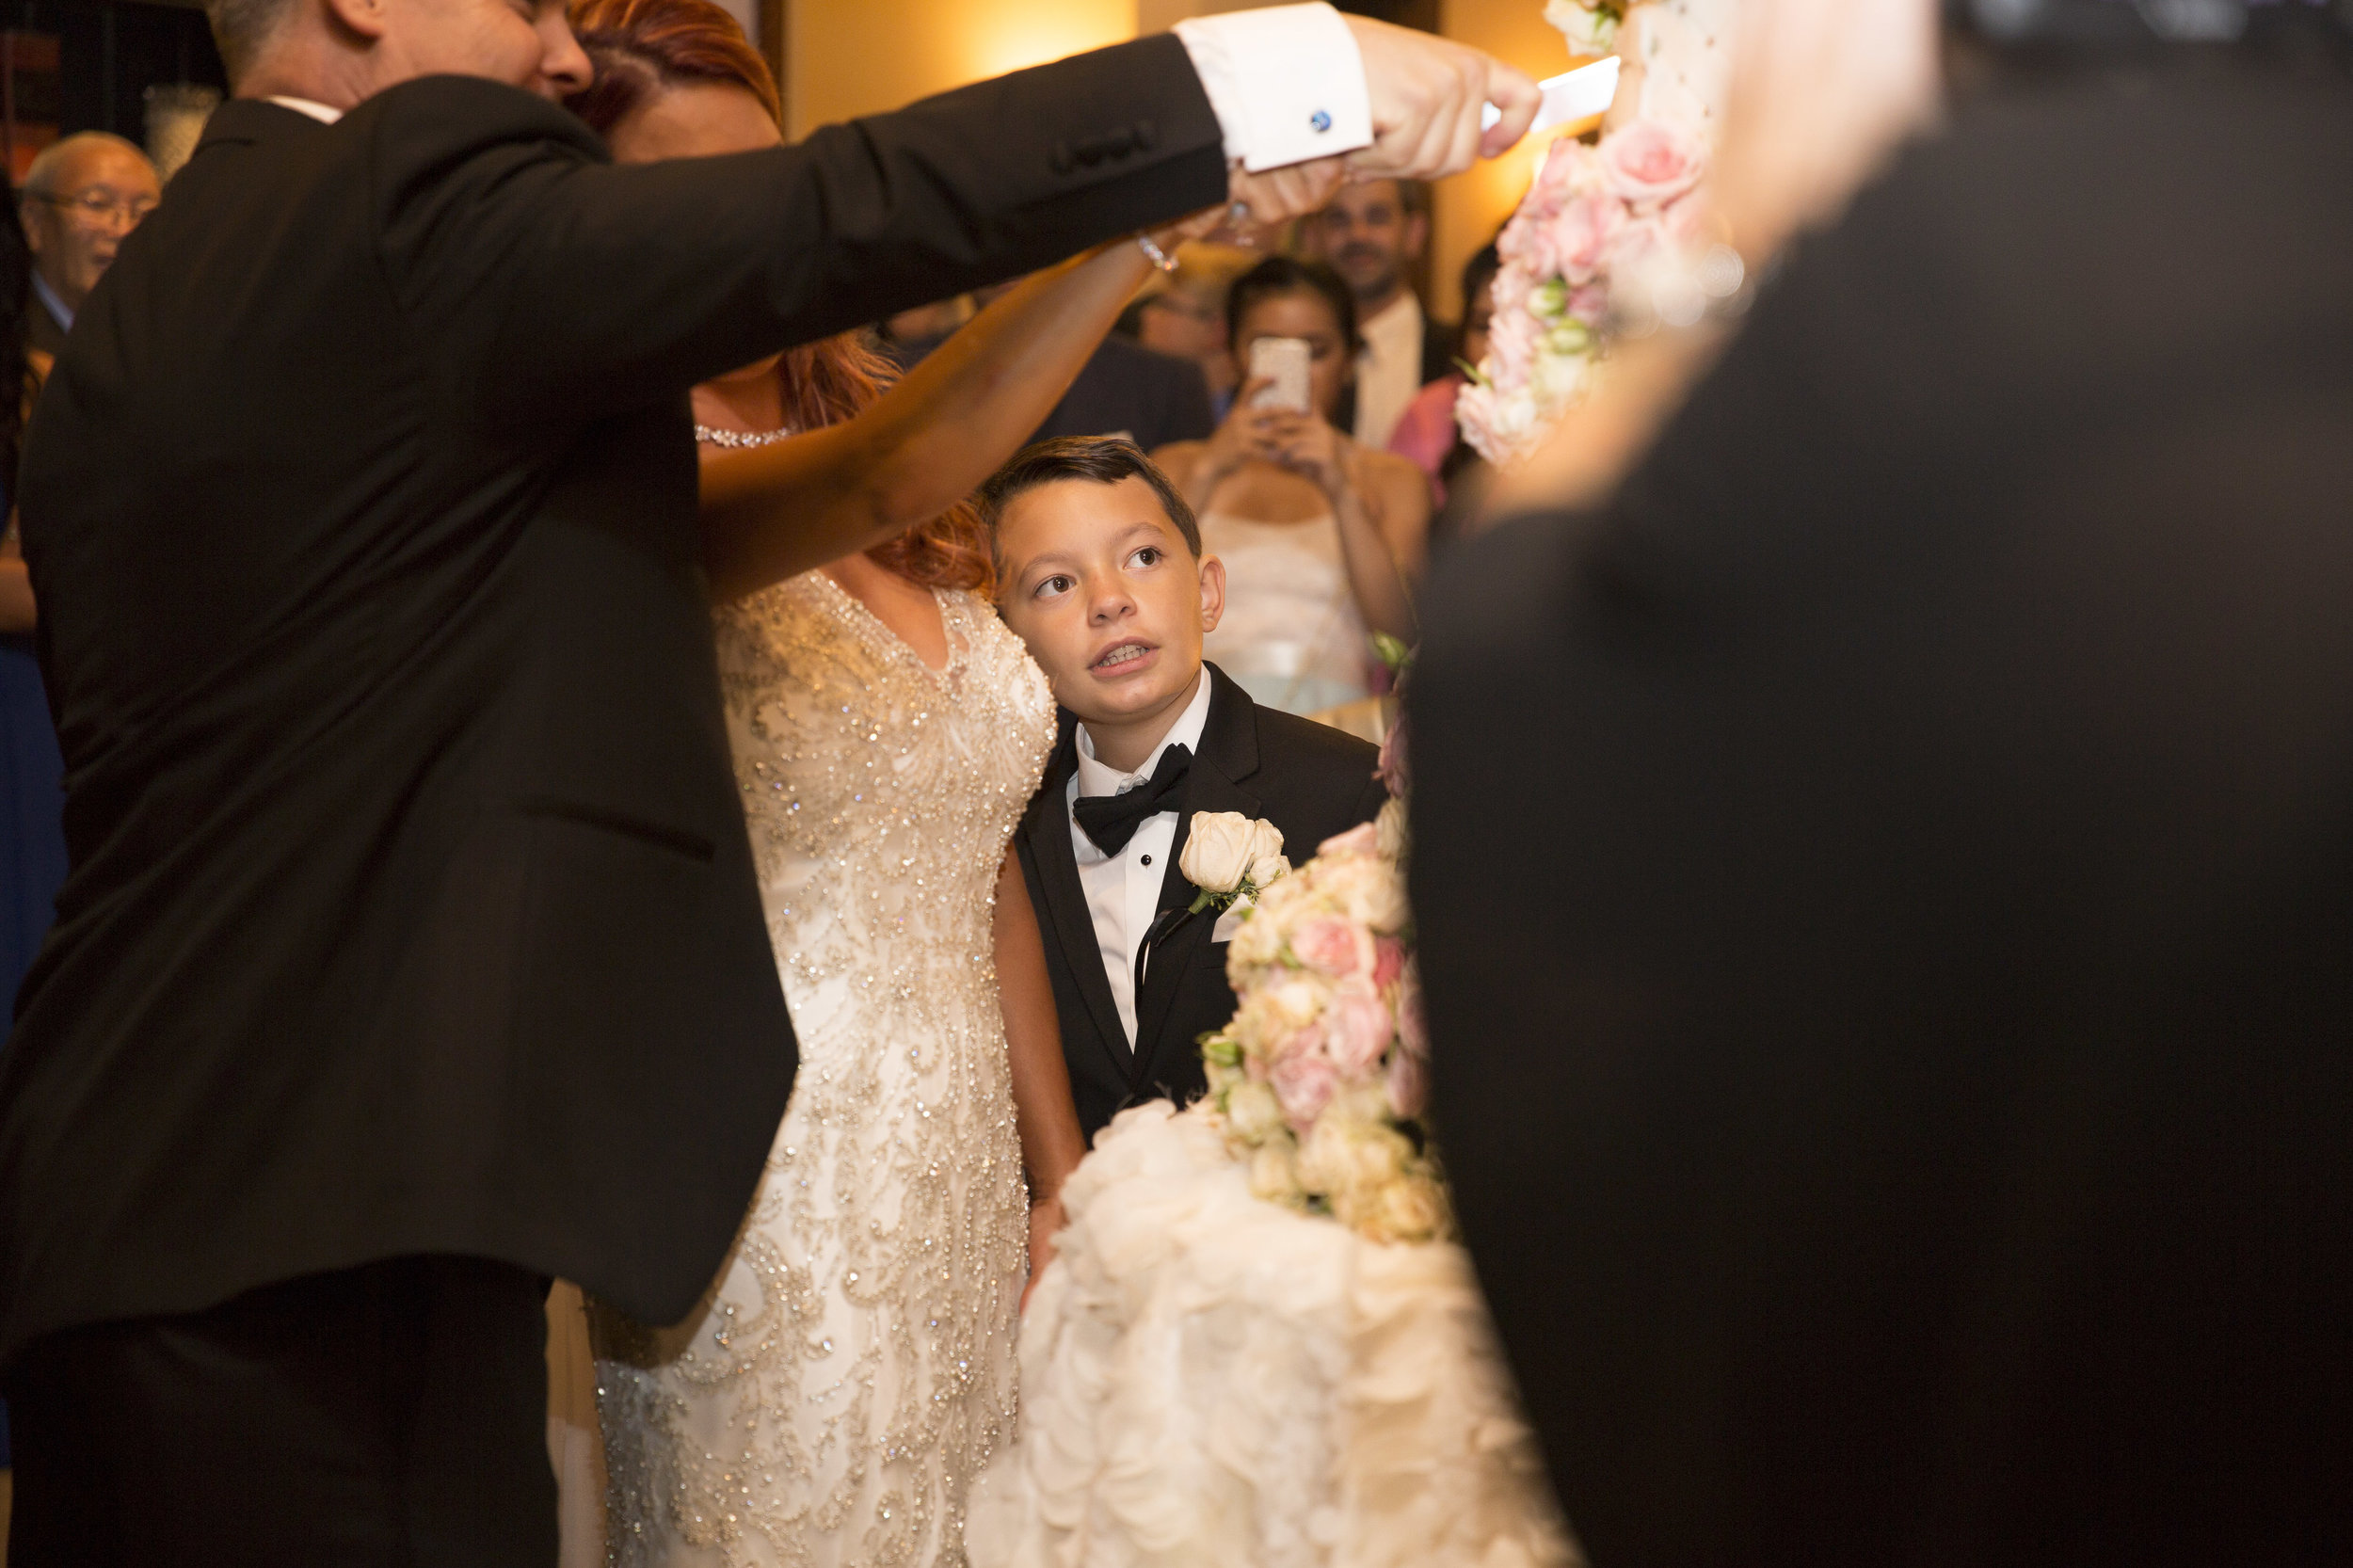 The bride and groom cut the cake while her son watches. Luxury Las Vegas Wedding Planner Andrea Eppolito. Image by AltF Photography.